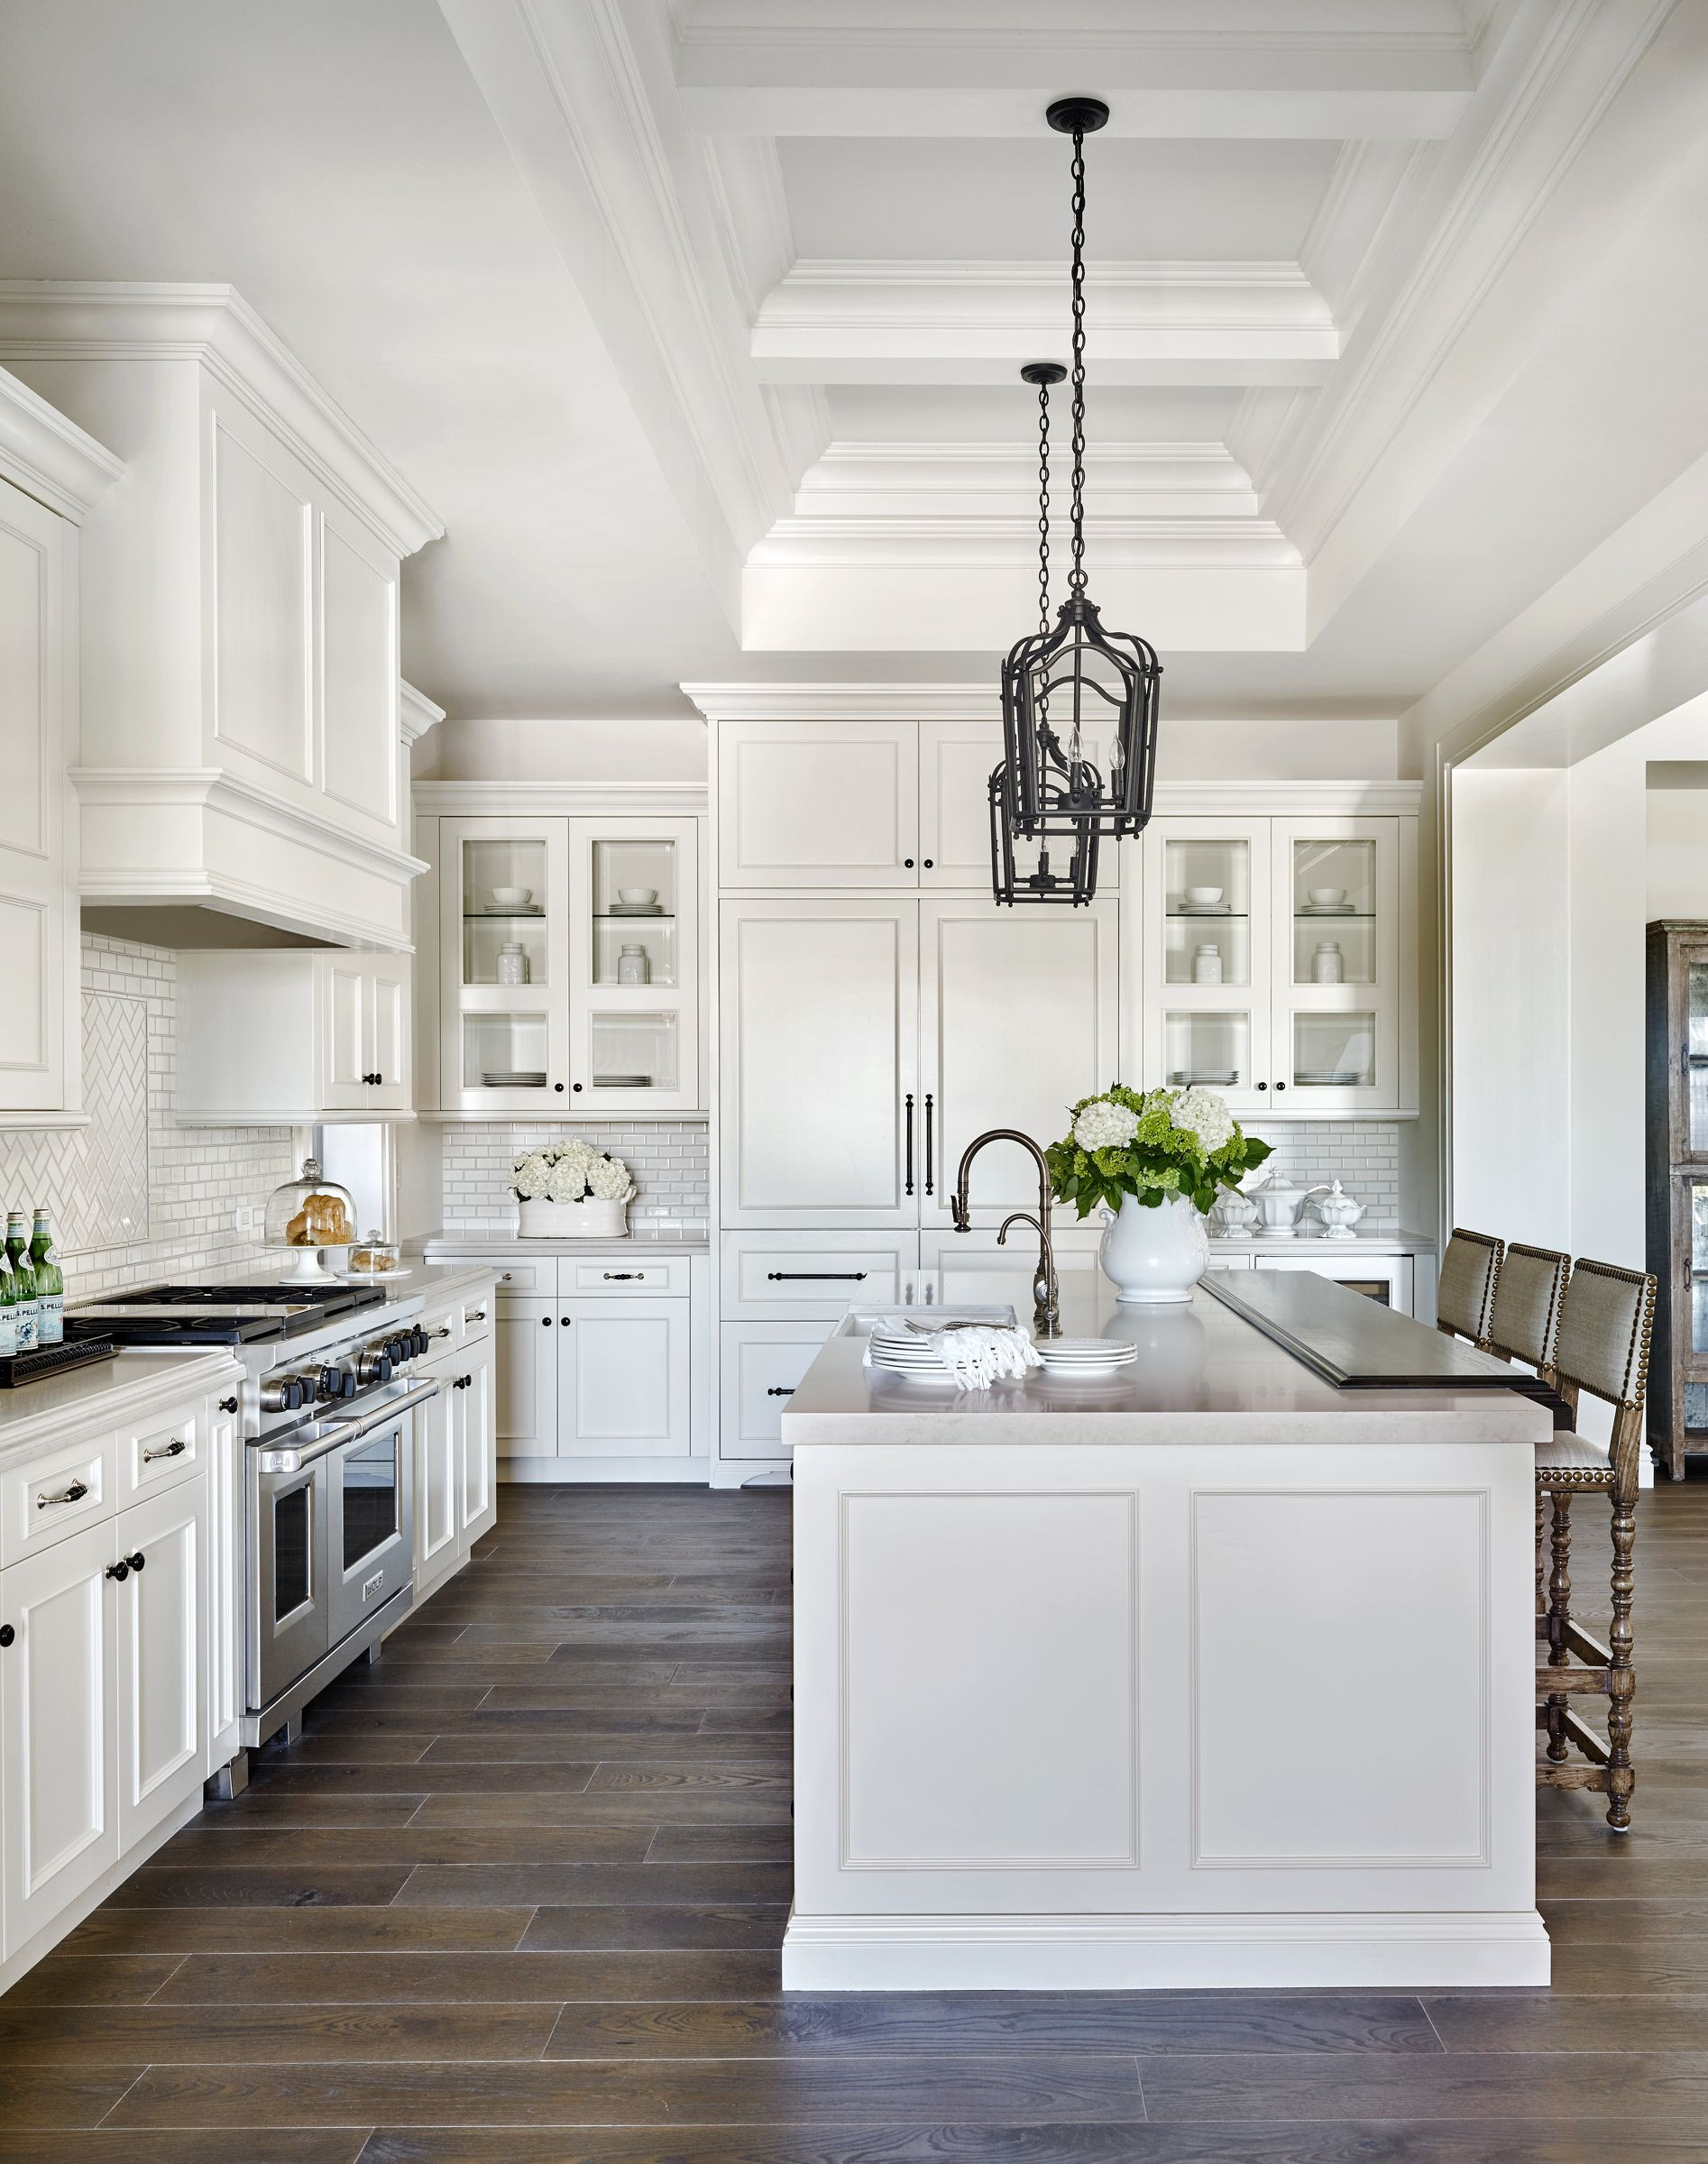 white kitchen with grey hardwood floors of i want this exact layout of island opposite stove whisper rock with regard to i want this exact layout of island opposite stove whisper rock traditional calvis wyant custom homes scottsdale az